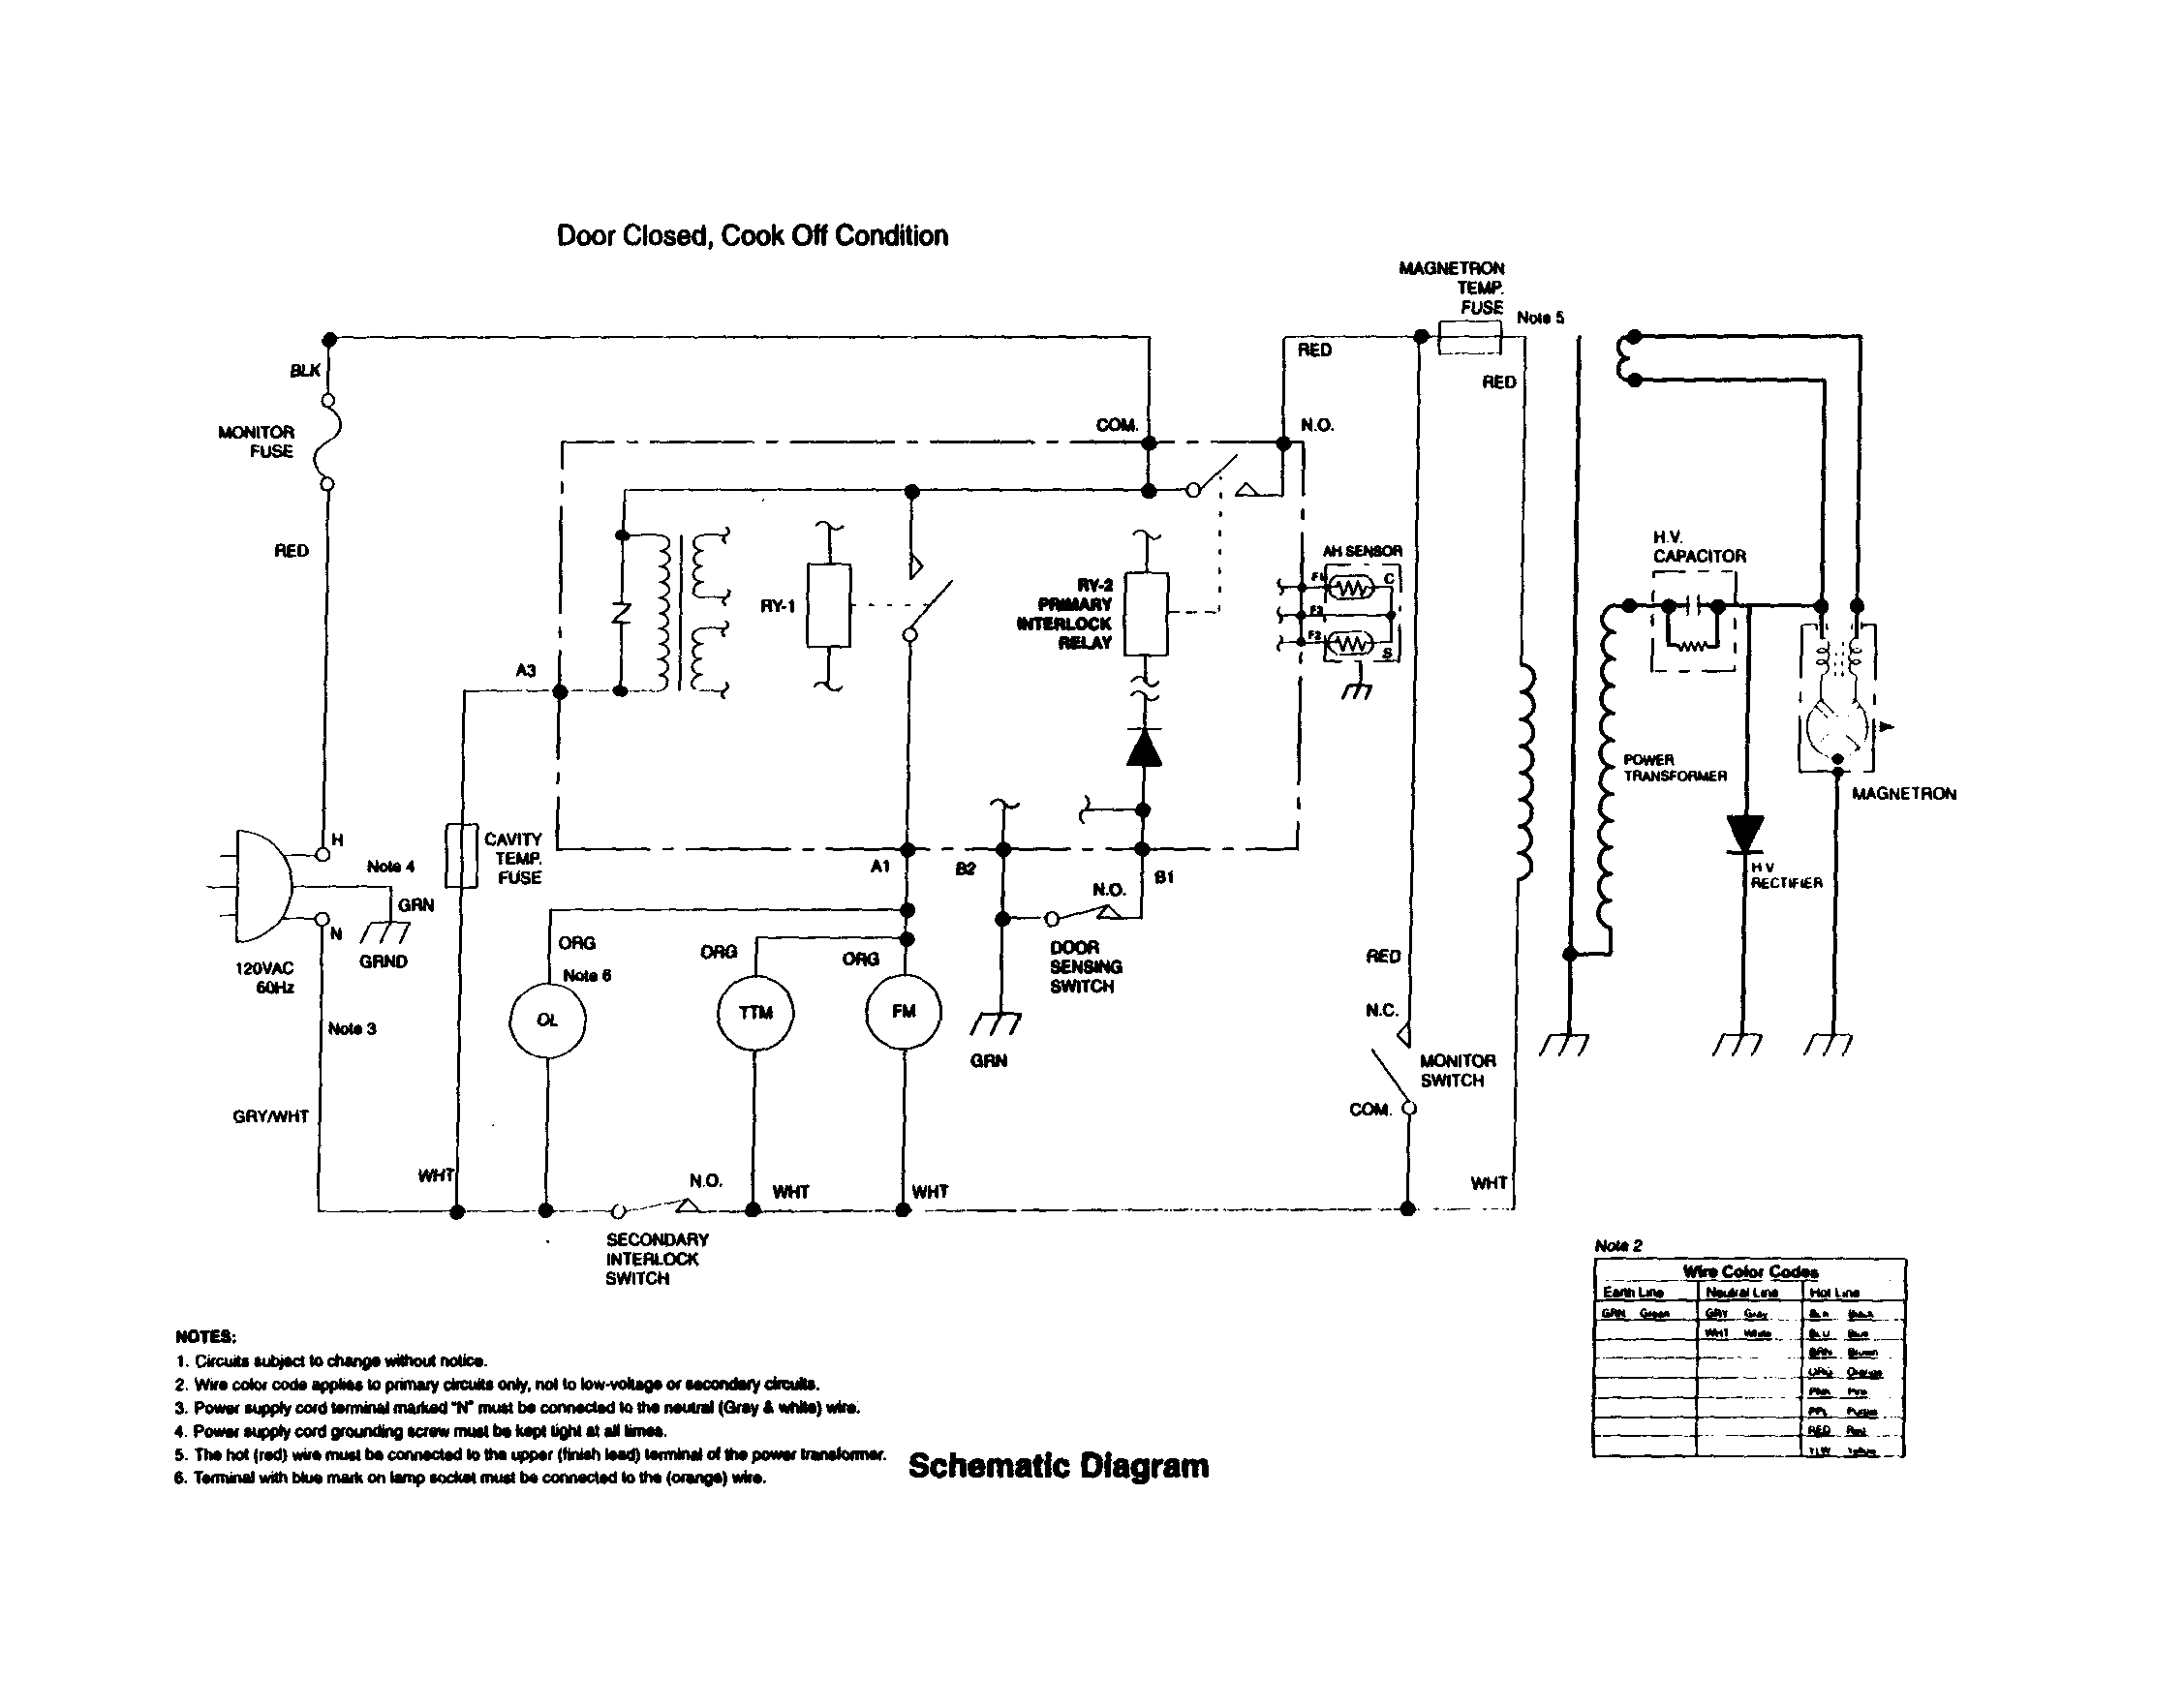 Microwave Wiring Schematic | Wiring Diagram on